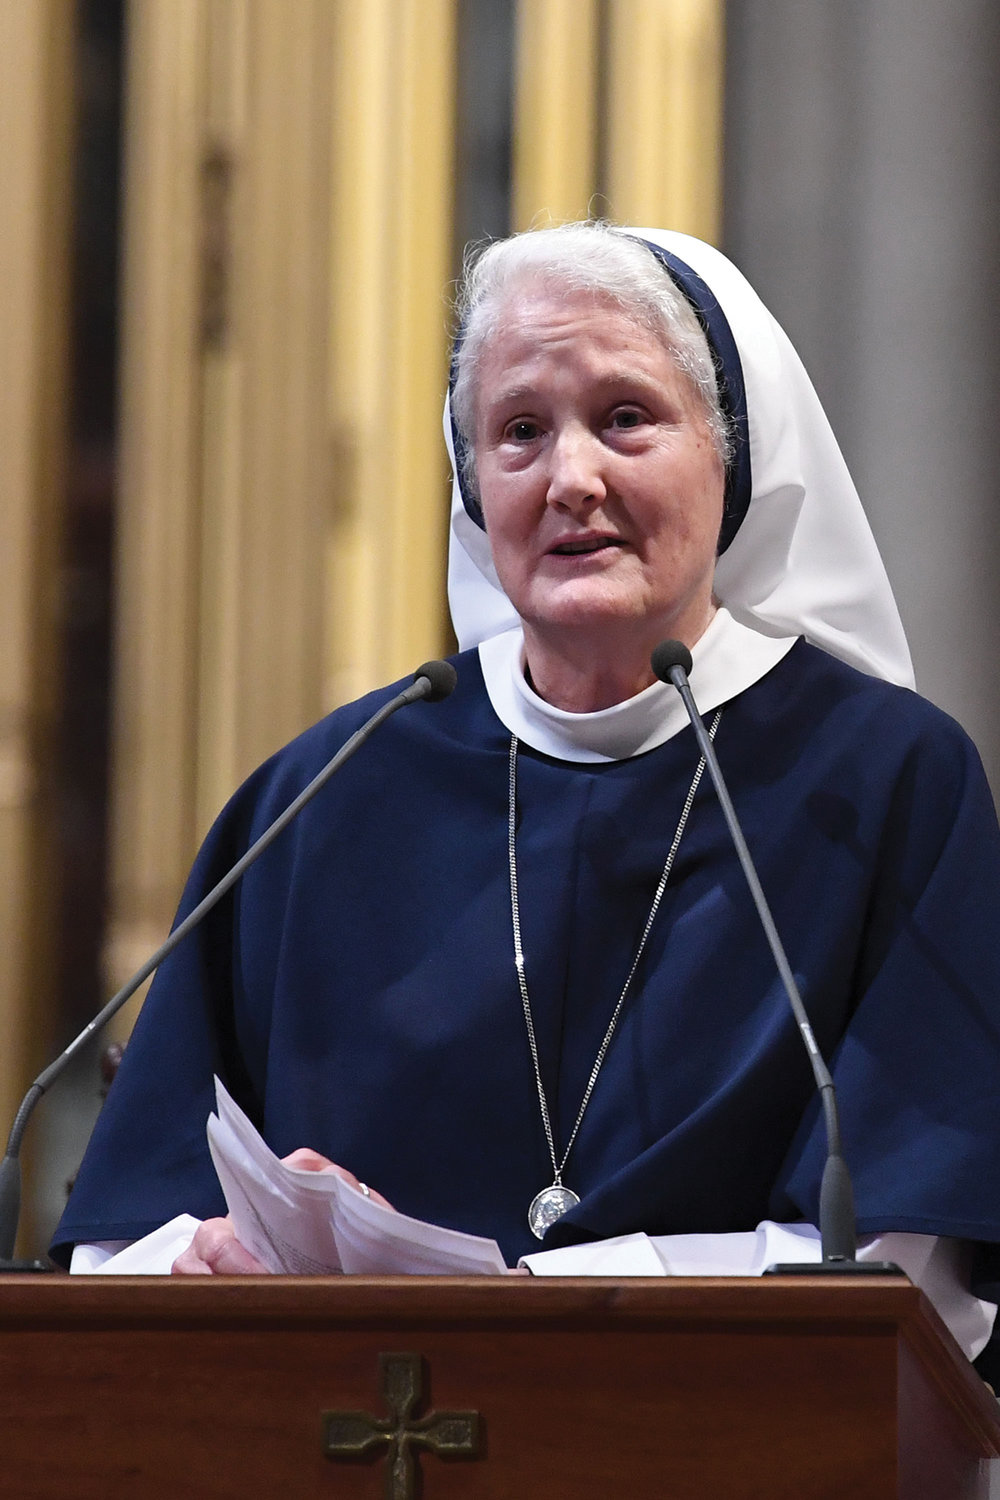 Mother Agnes Mary Donovan, S.V., superior general of the Sisters of Life, gave a reflection about Cardinal O'Connor after the Mass. The cardinal founded the religious community in 1991.